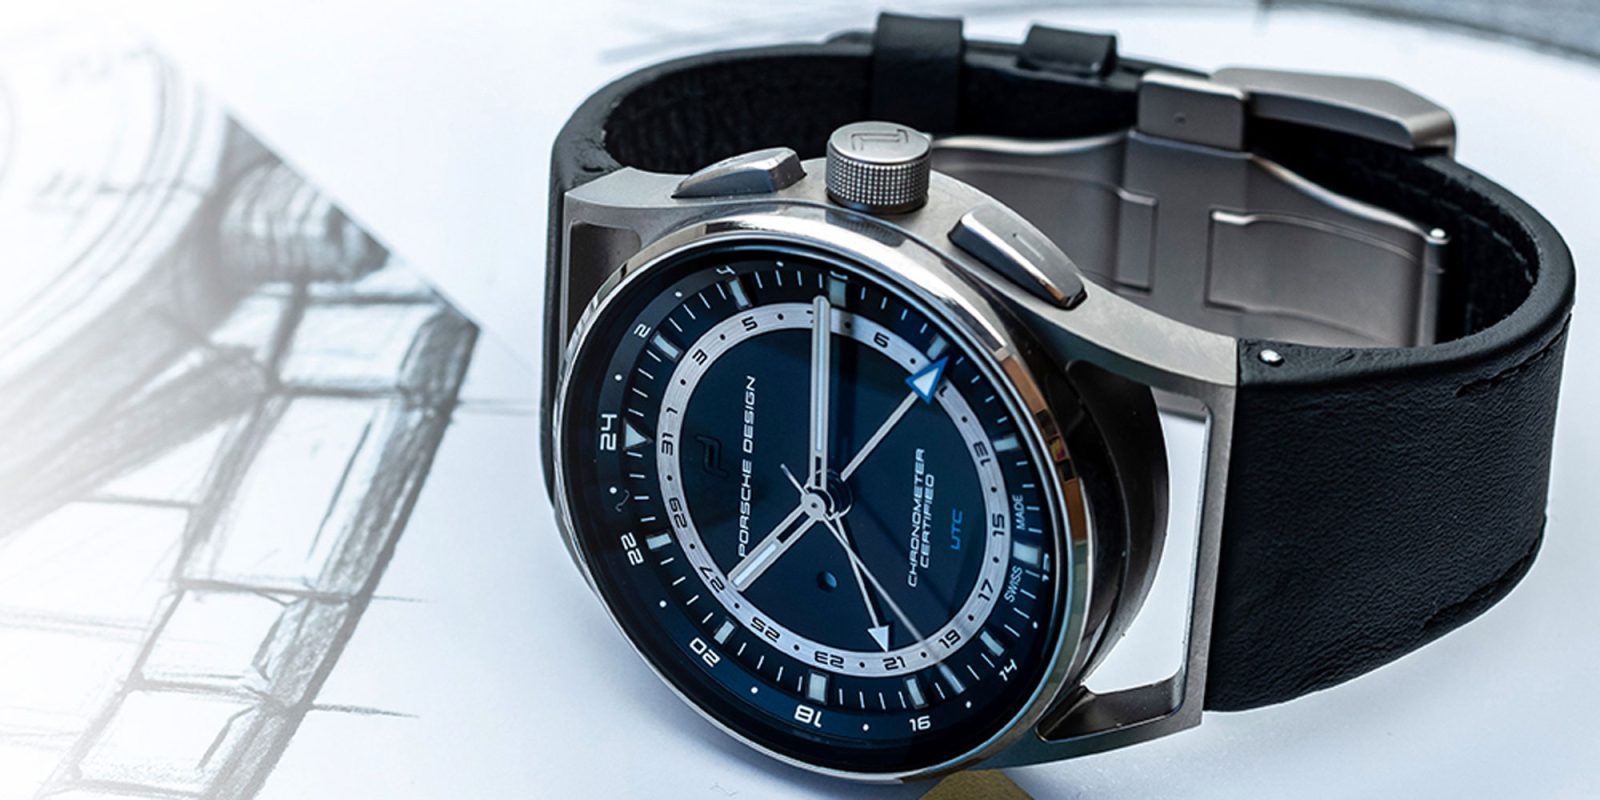 be65691b5c65 Put a Porsche Design Timepiece on your wrist to show off your vehicle love